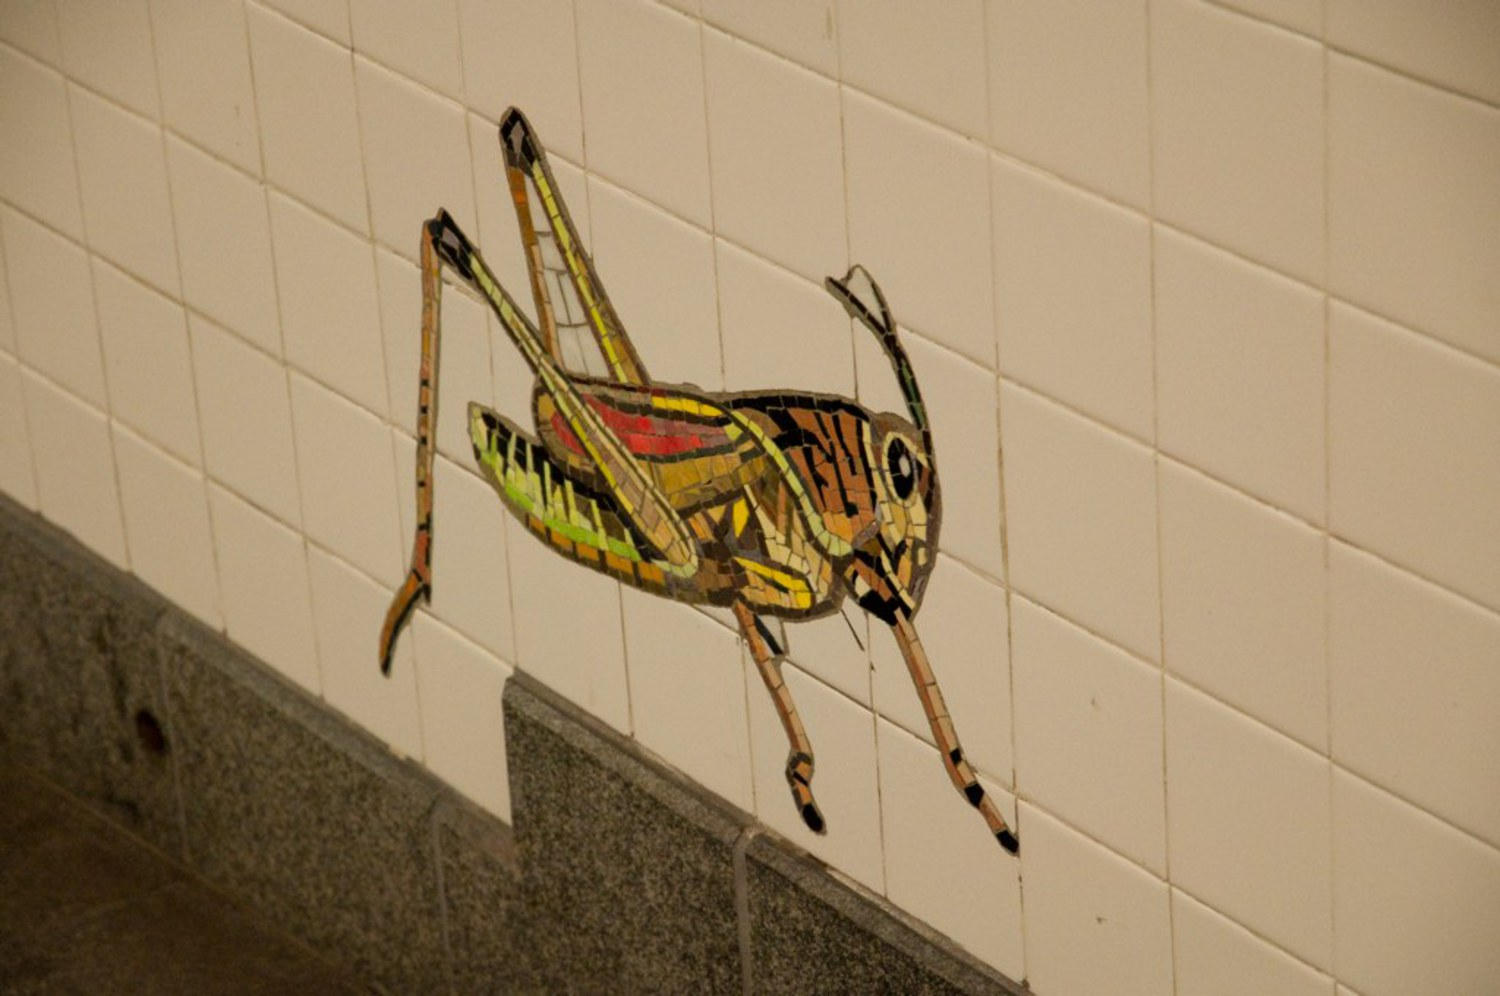 Cricket Subway | A mosaic of a Cricket at the 81st Street Subway Station.